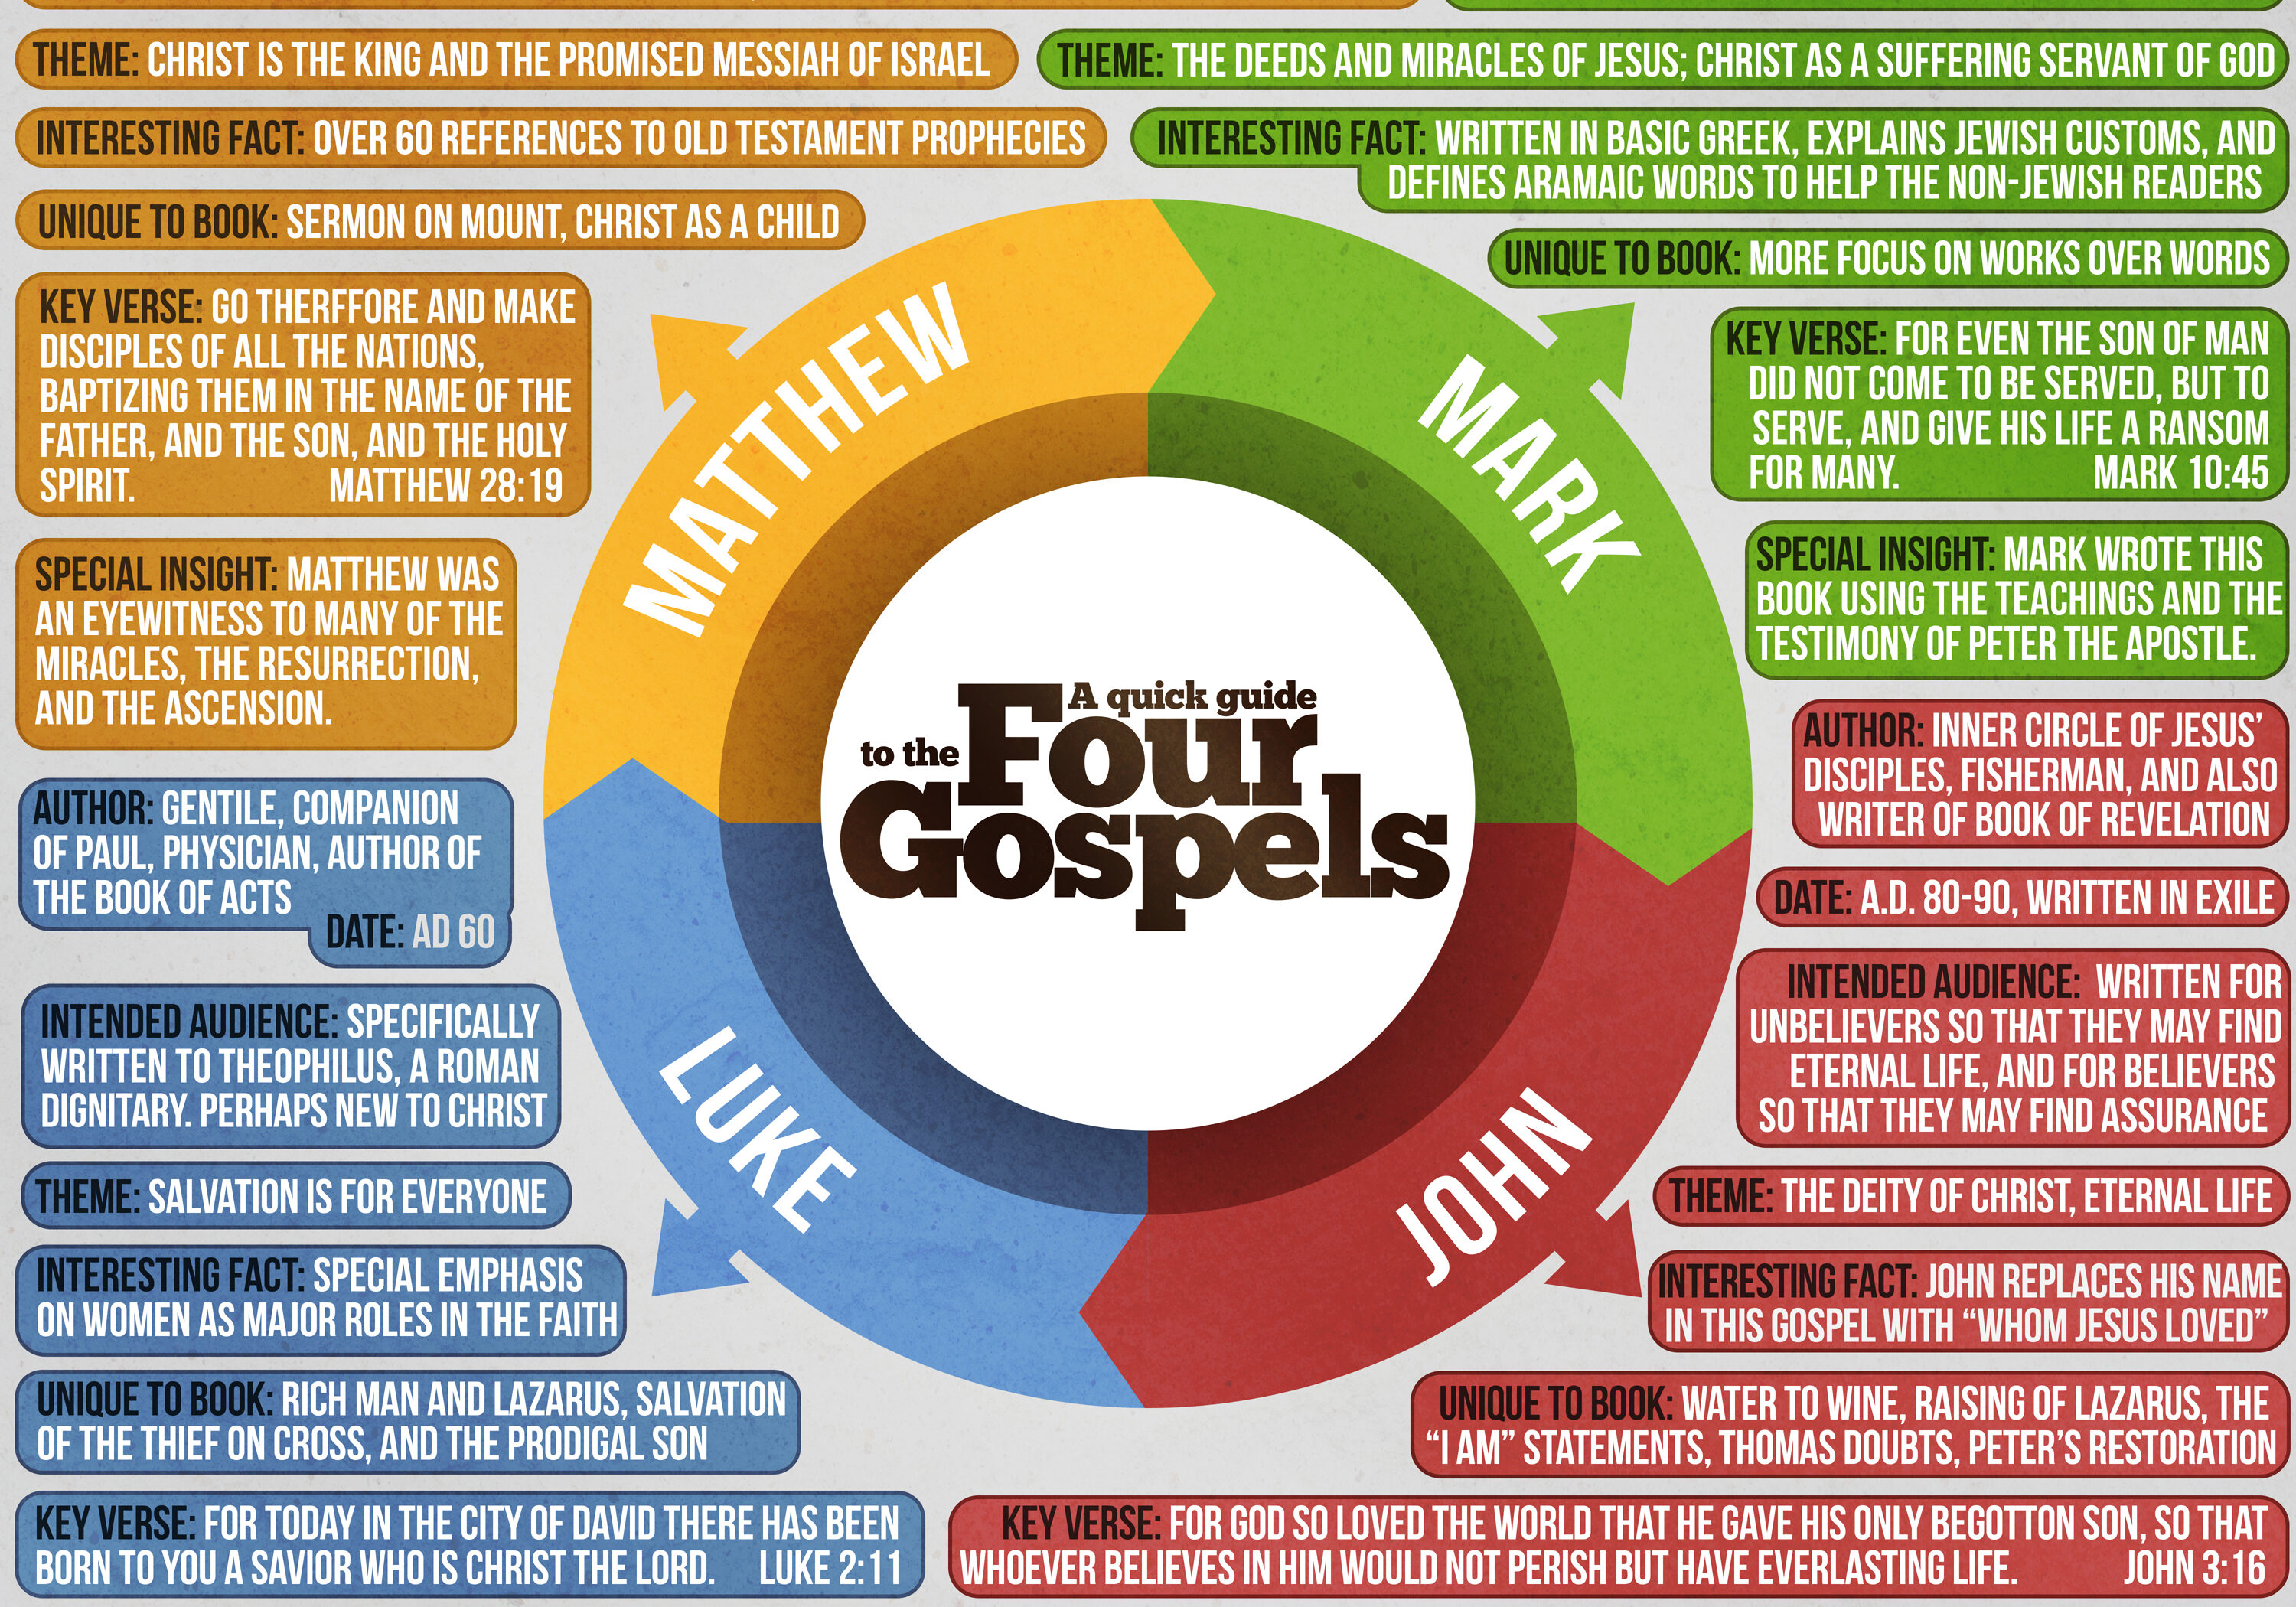 A quick reference guide to the four gospels